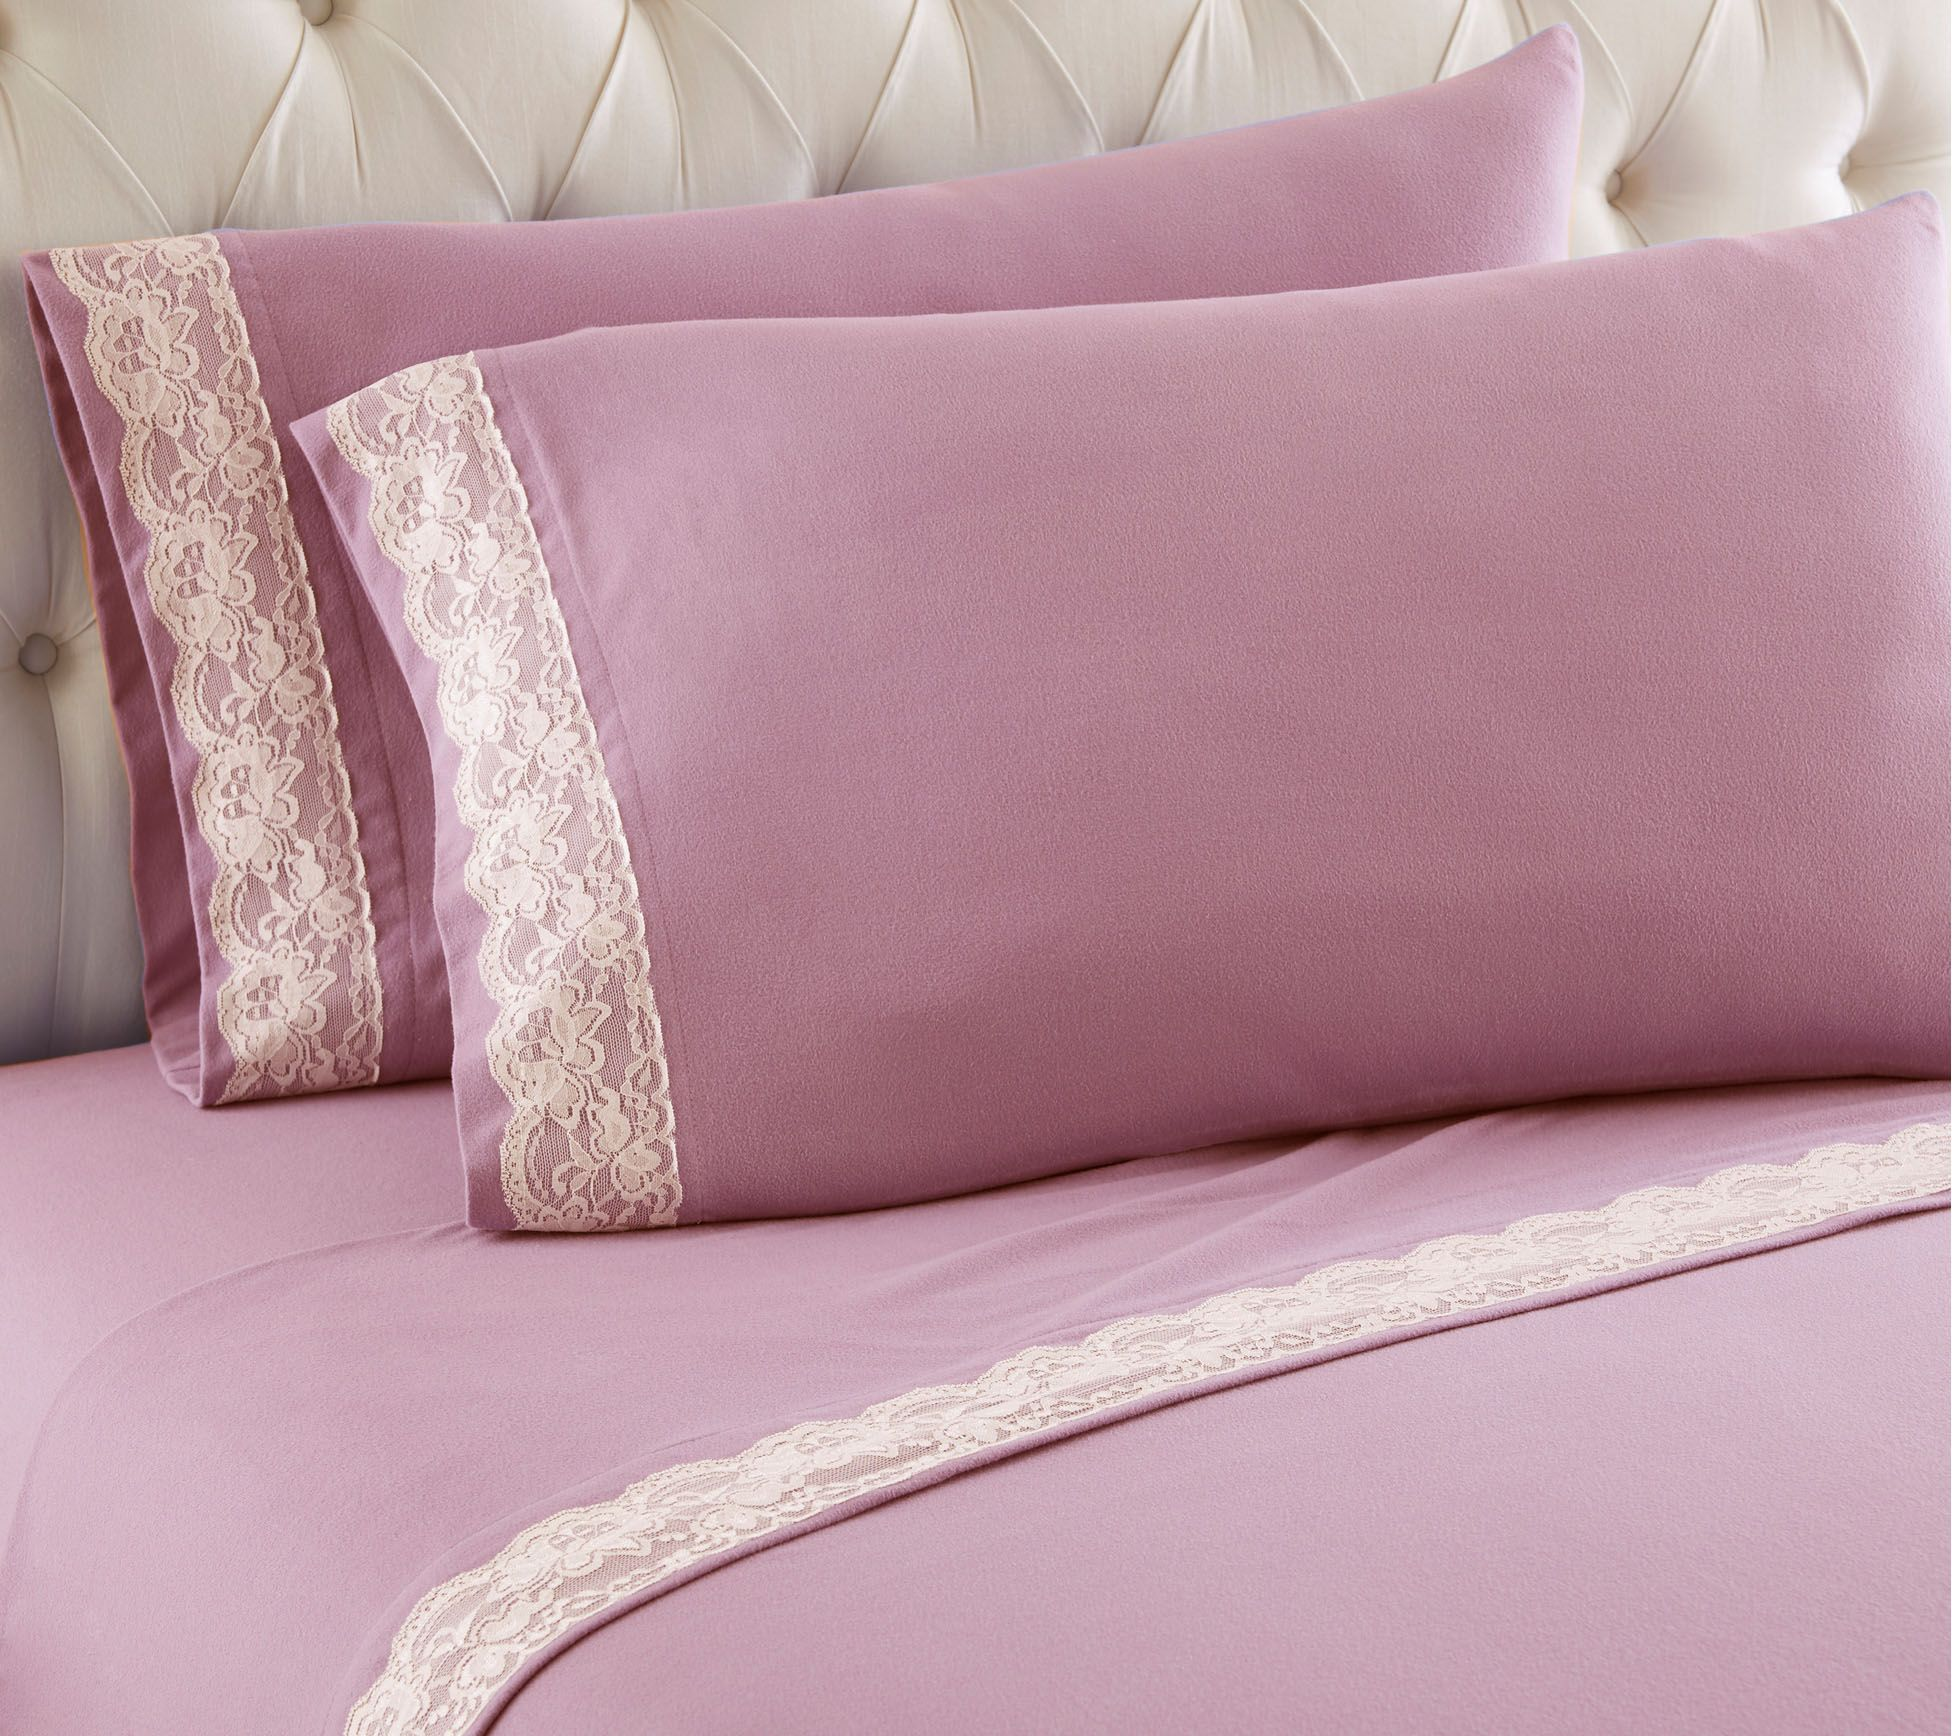 Shavel Micro Flannel Lace Edged Queen Sheet Set